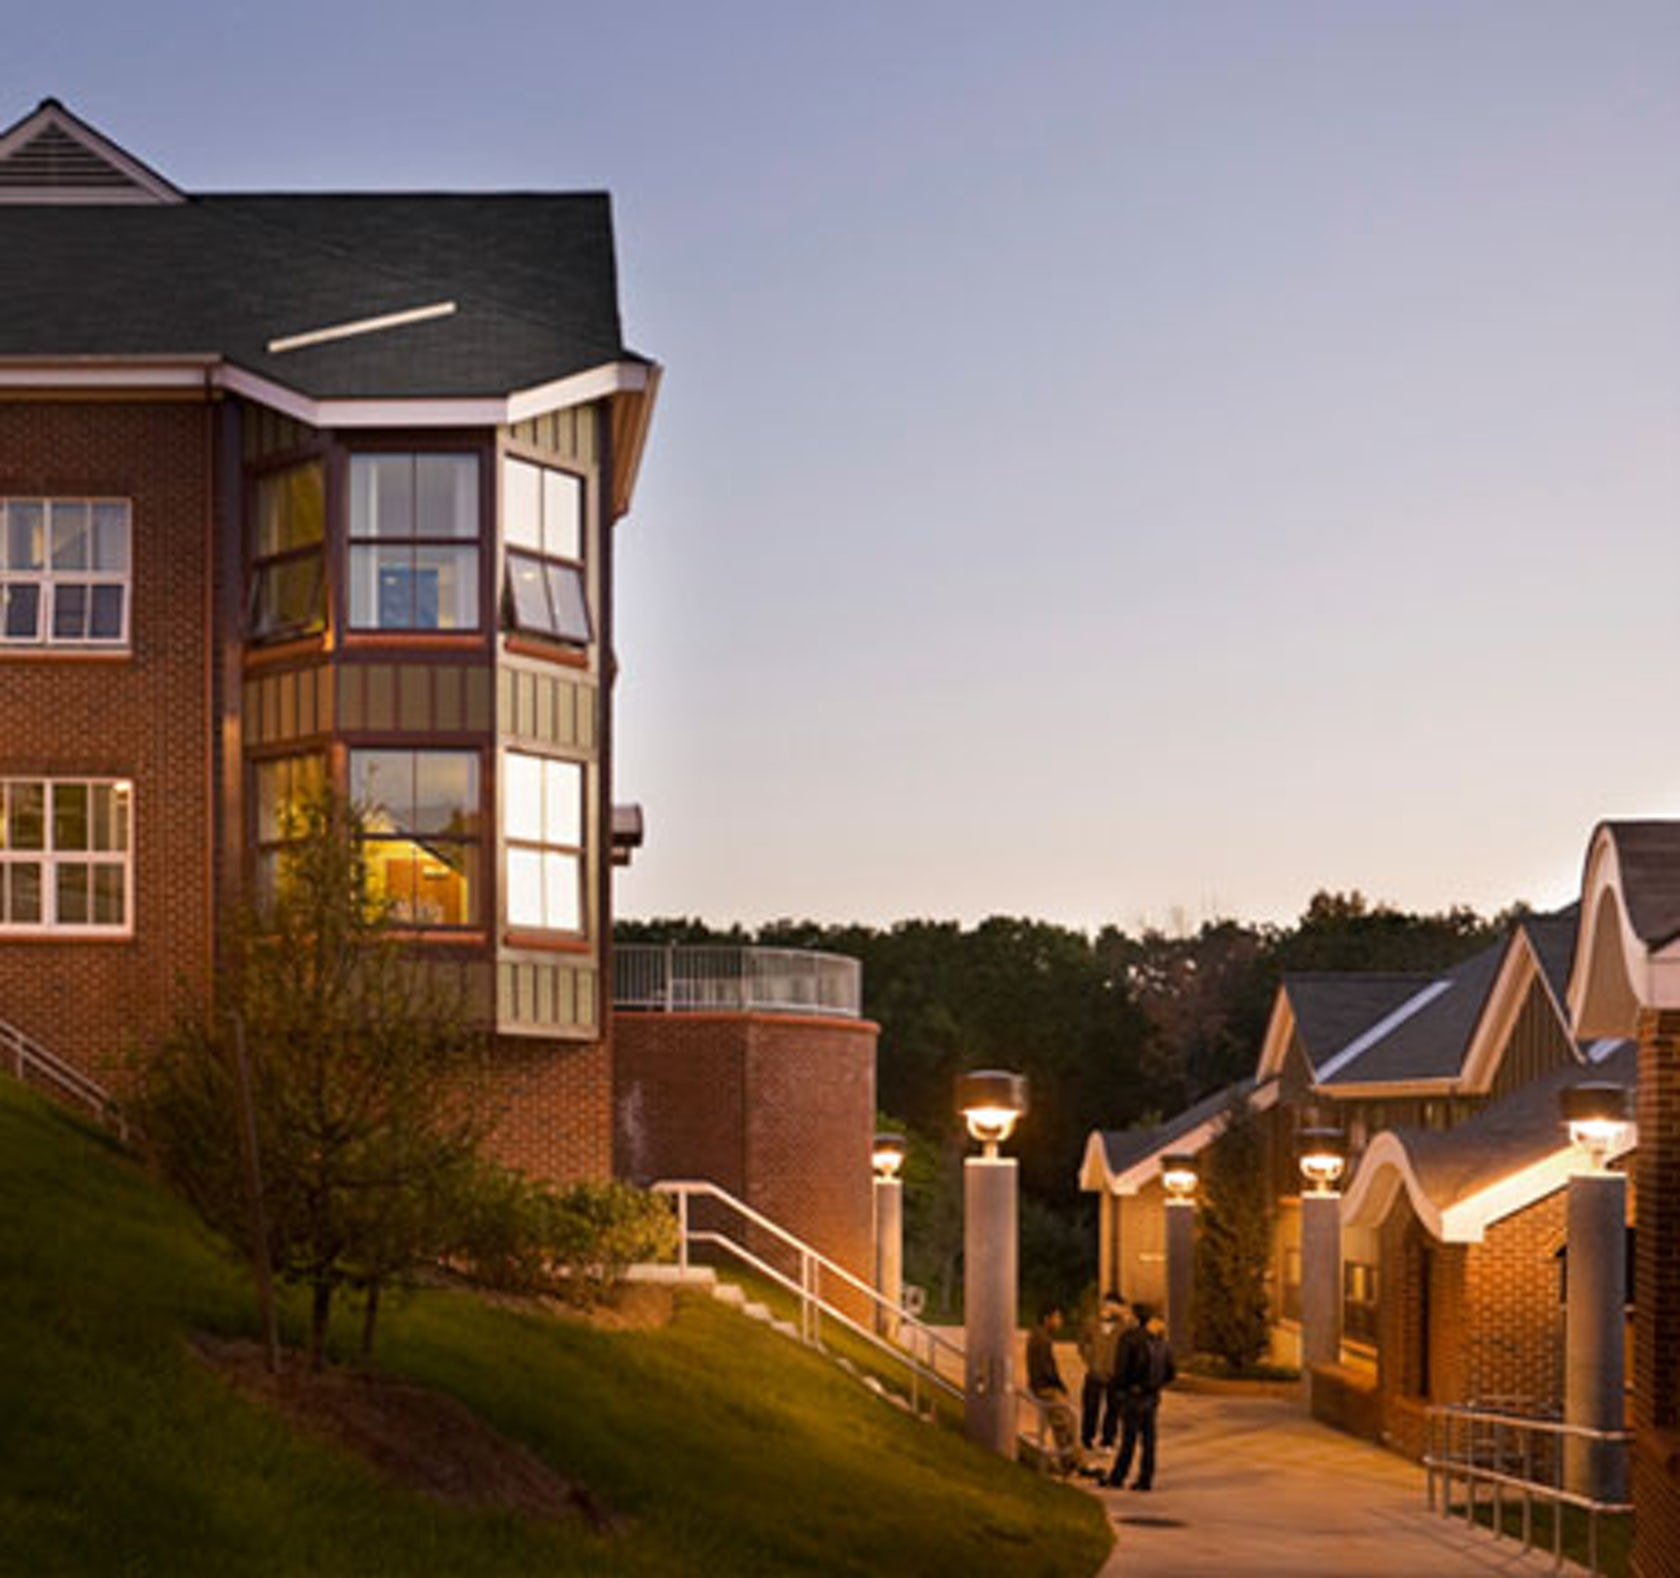 Stem School Eugene Oregon: Quinnipiac University, Village IV Residence Halls